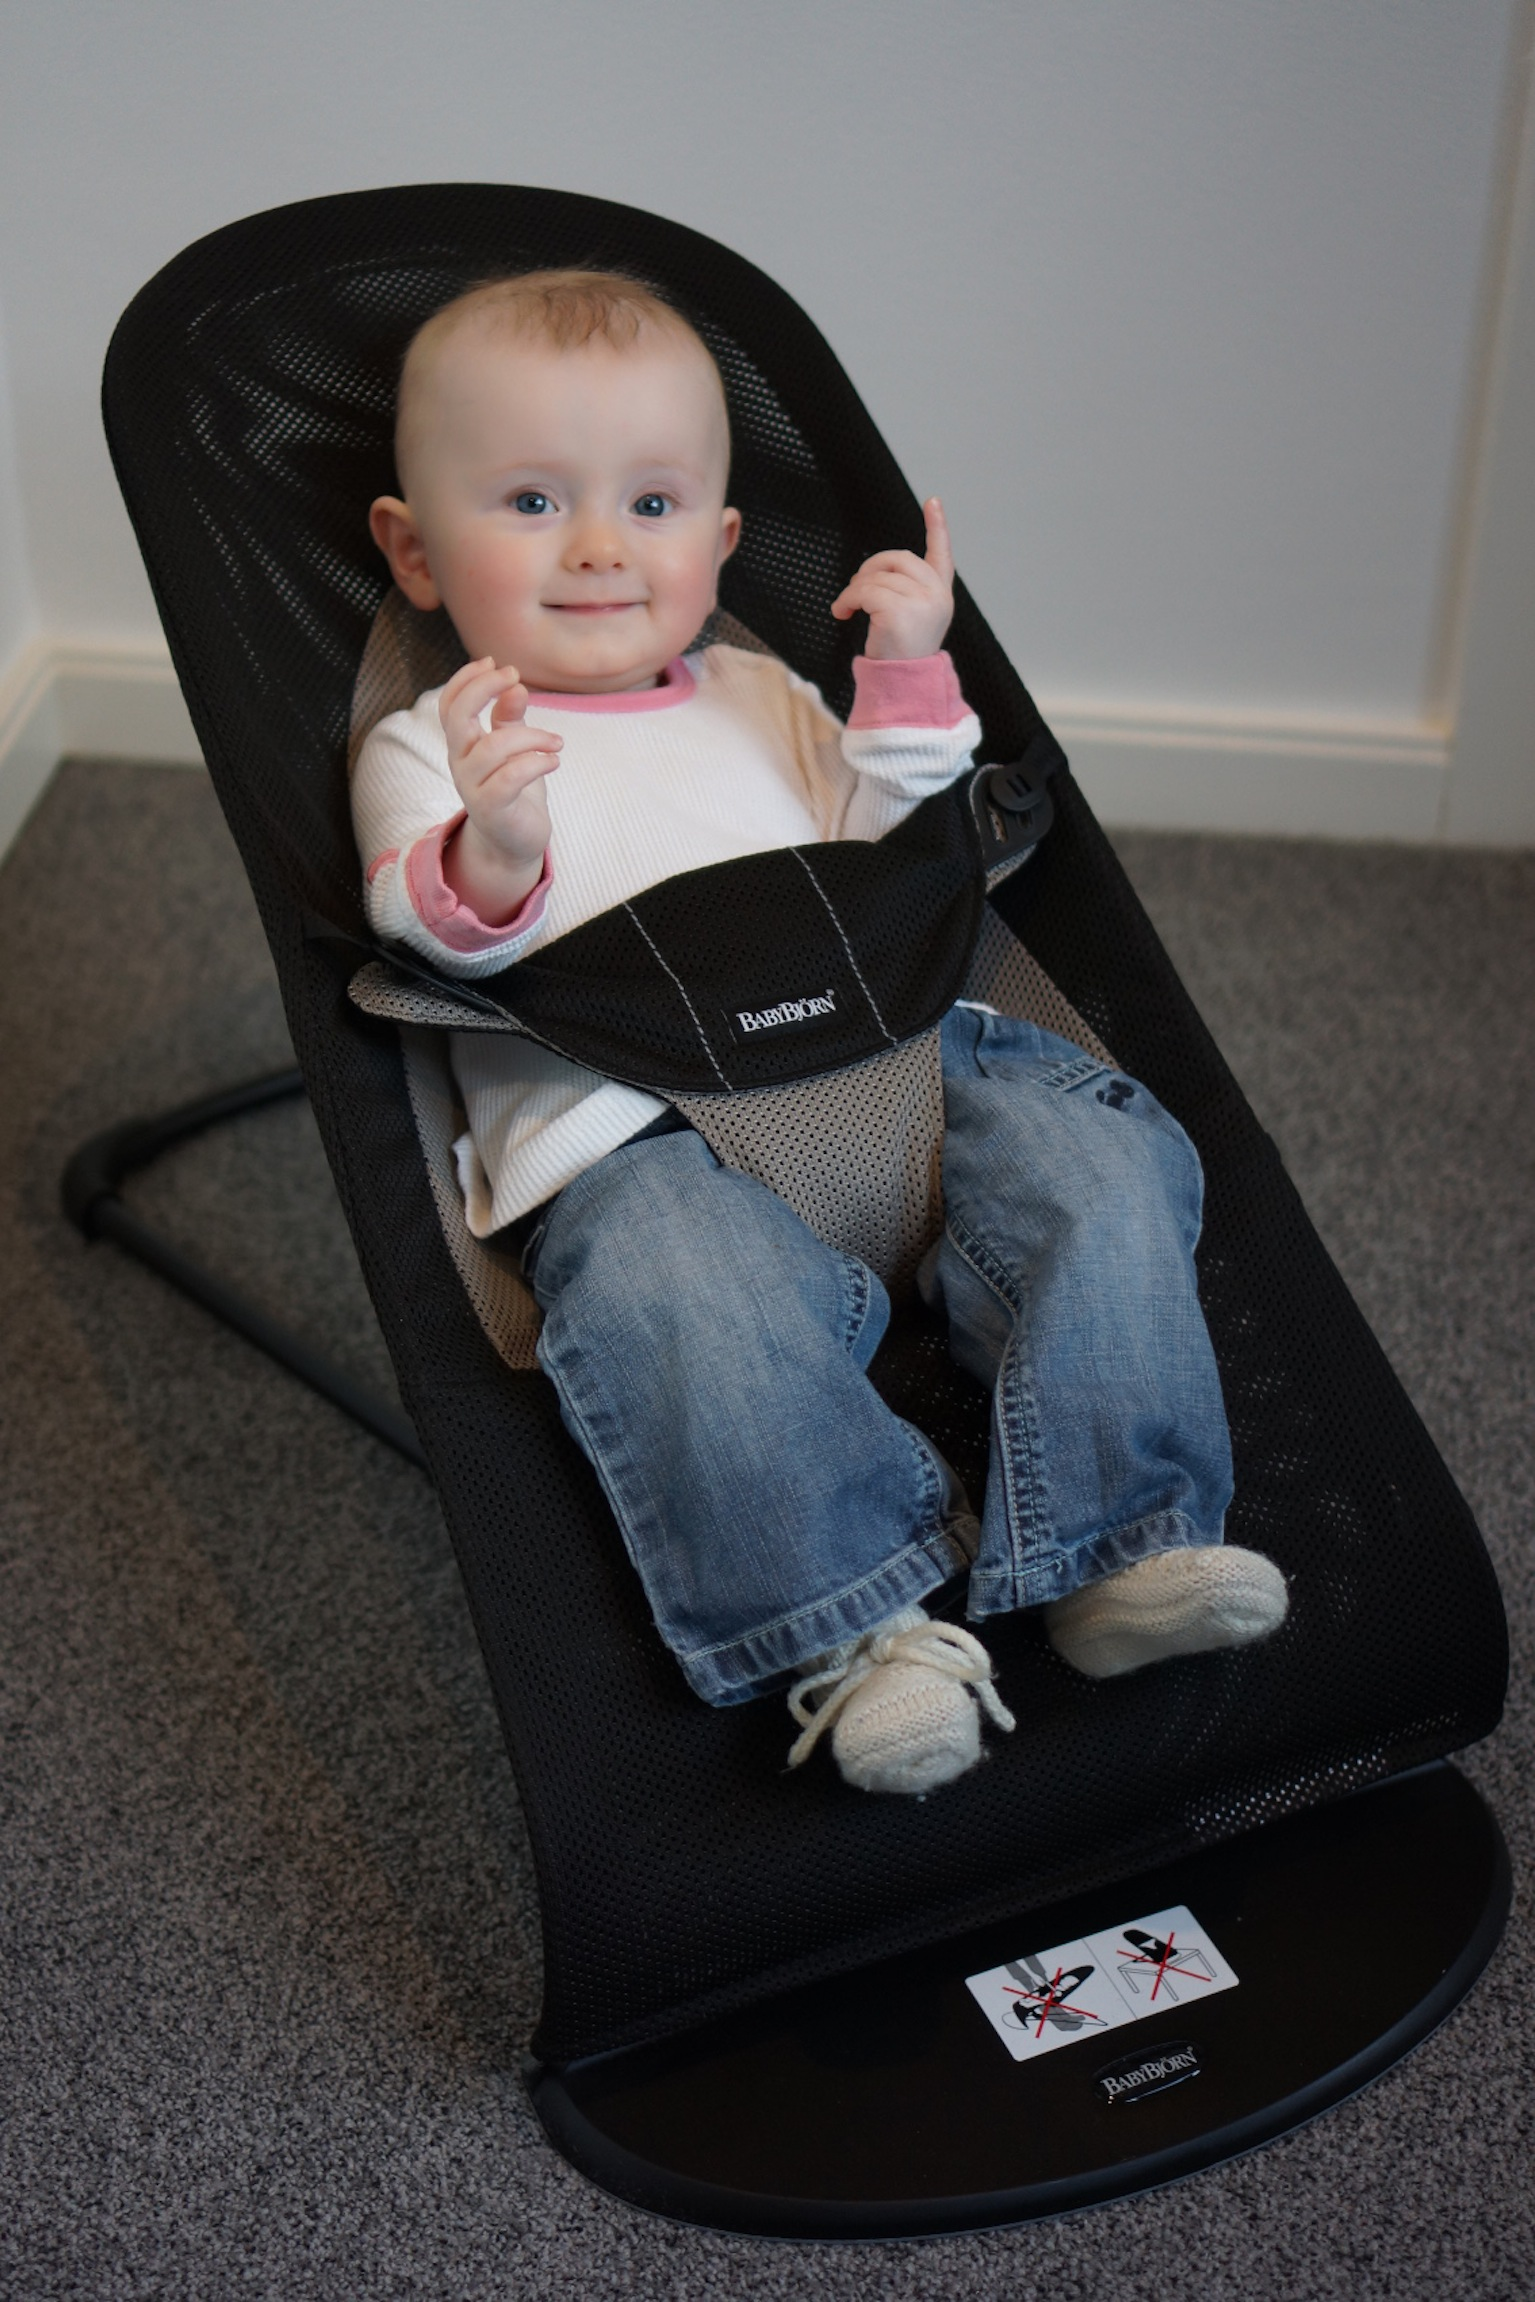 Bouncer Baby Babyreview Au Babybjorn Bouncer